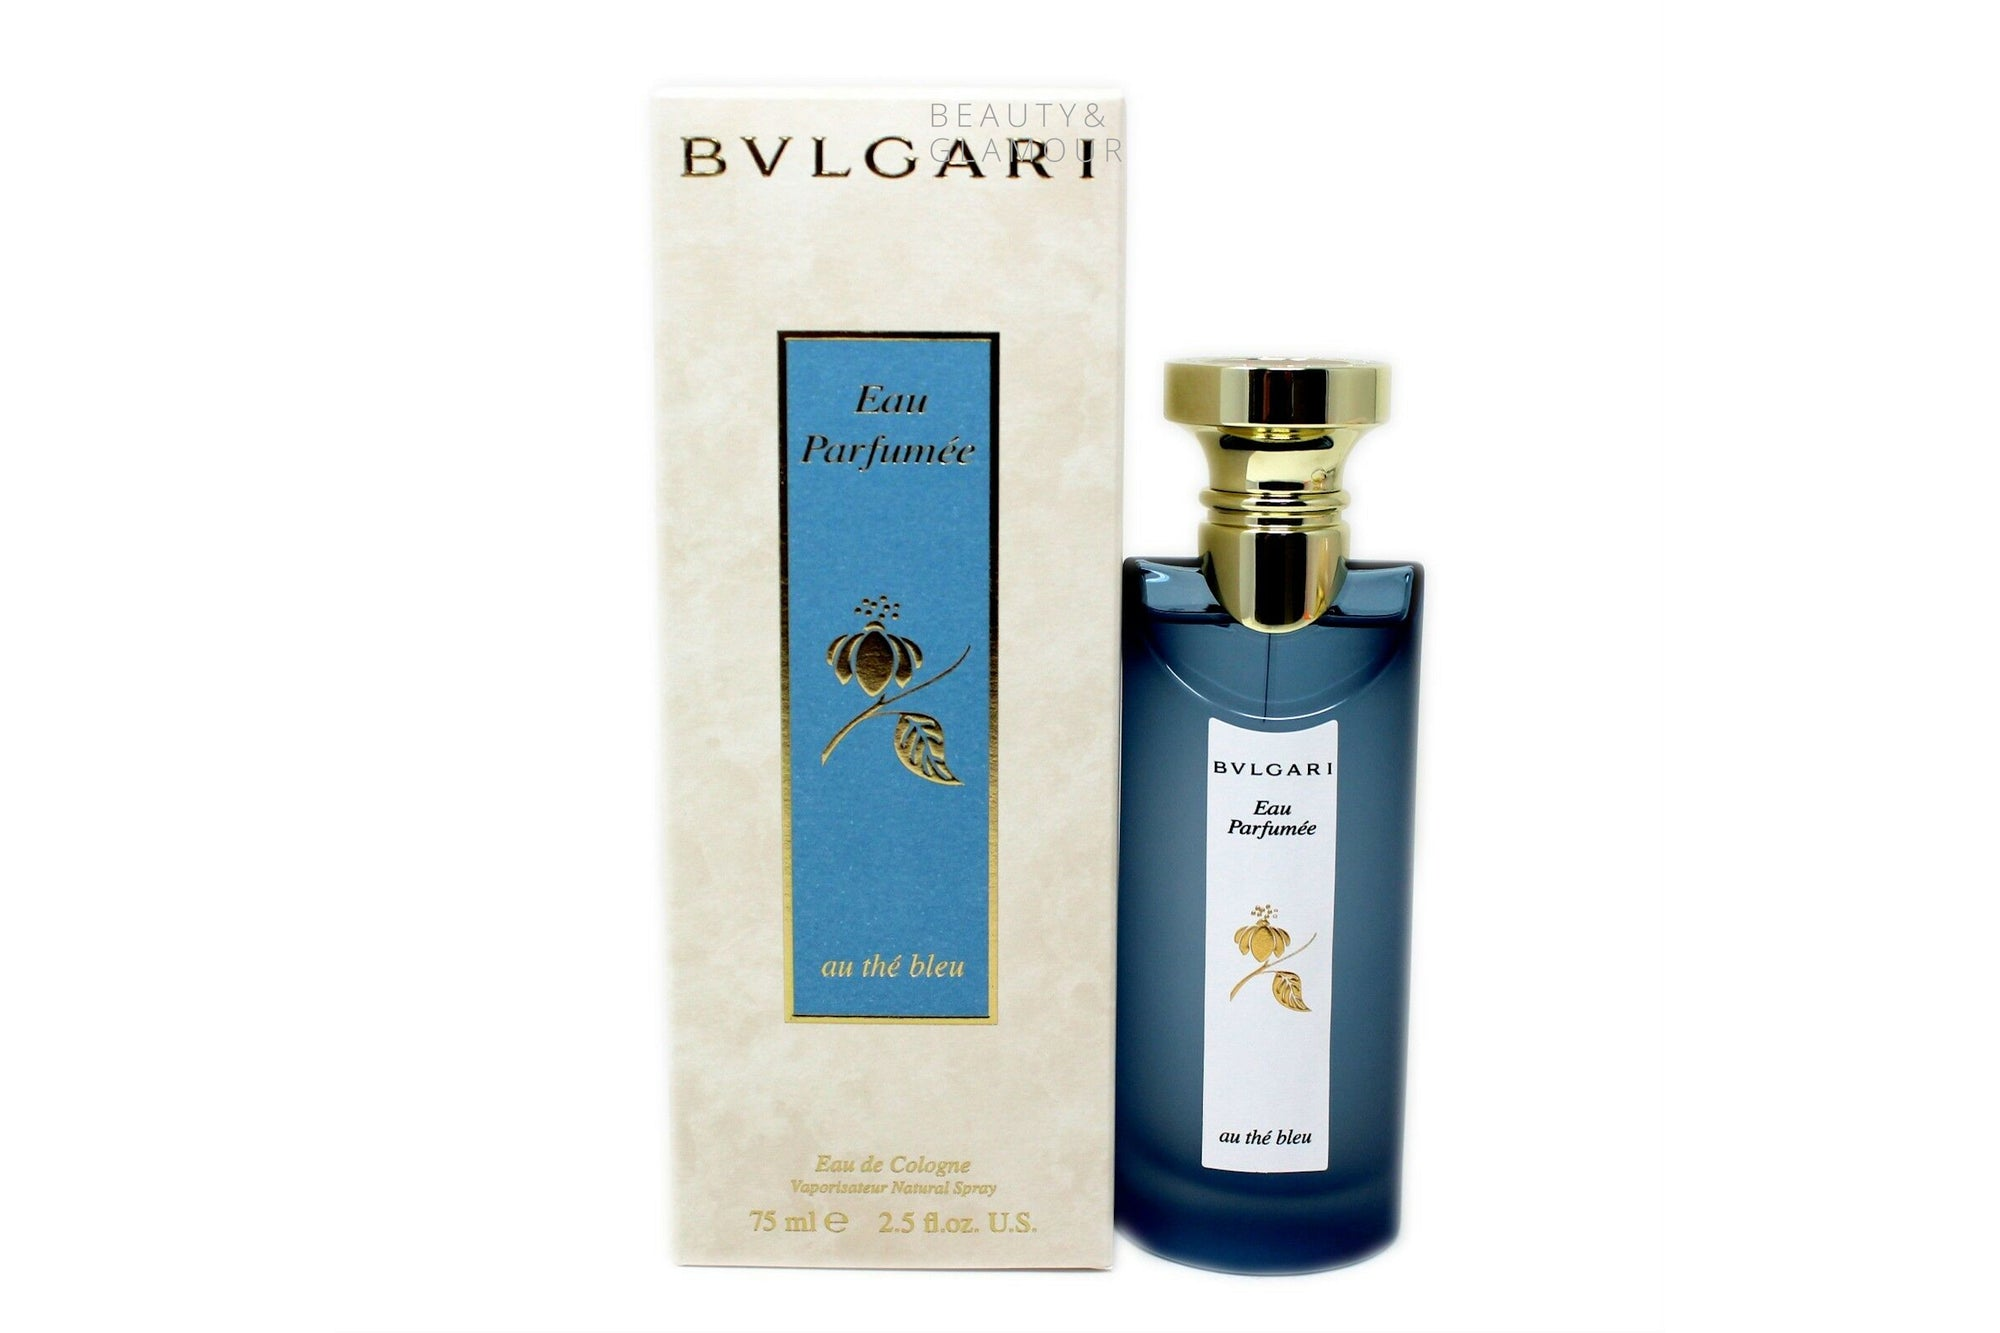 Bvlgari Eau Parfumee Au The Bleu Due De Cologne Spray